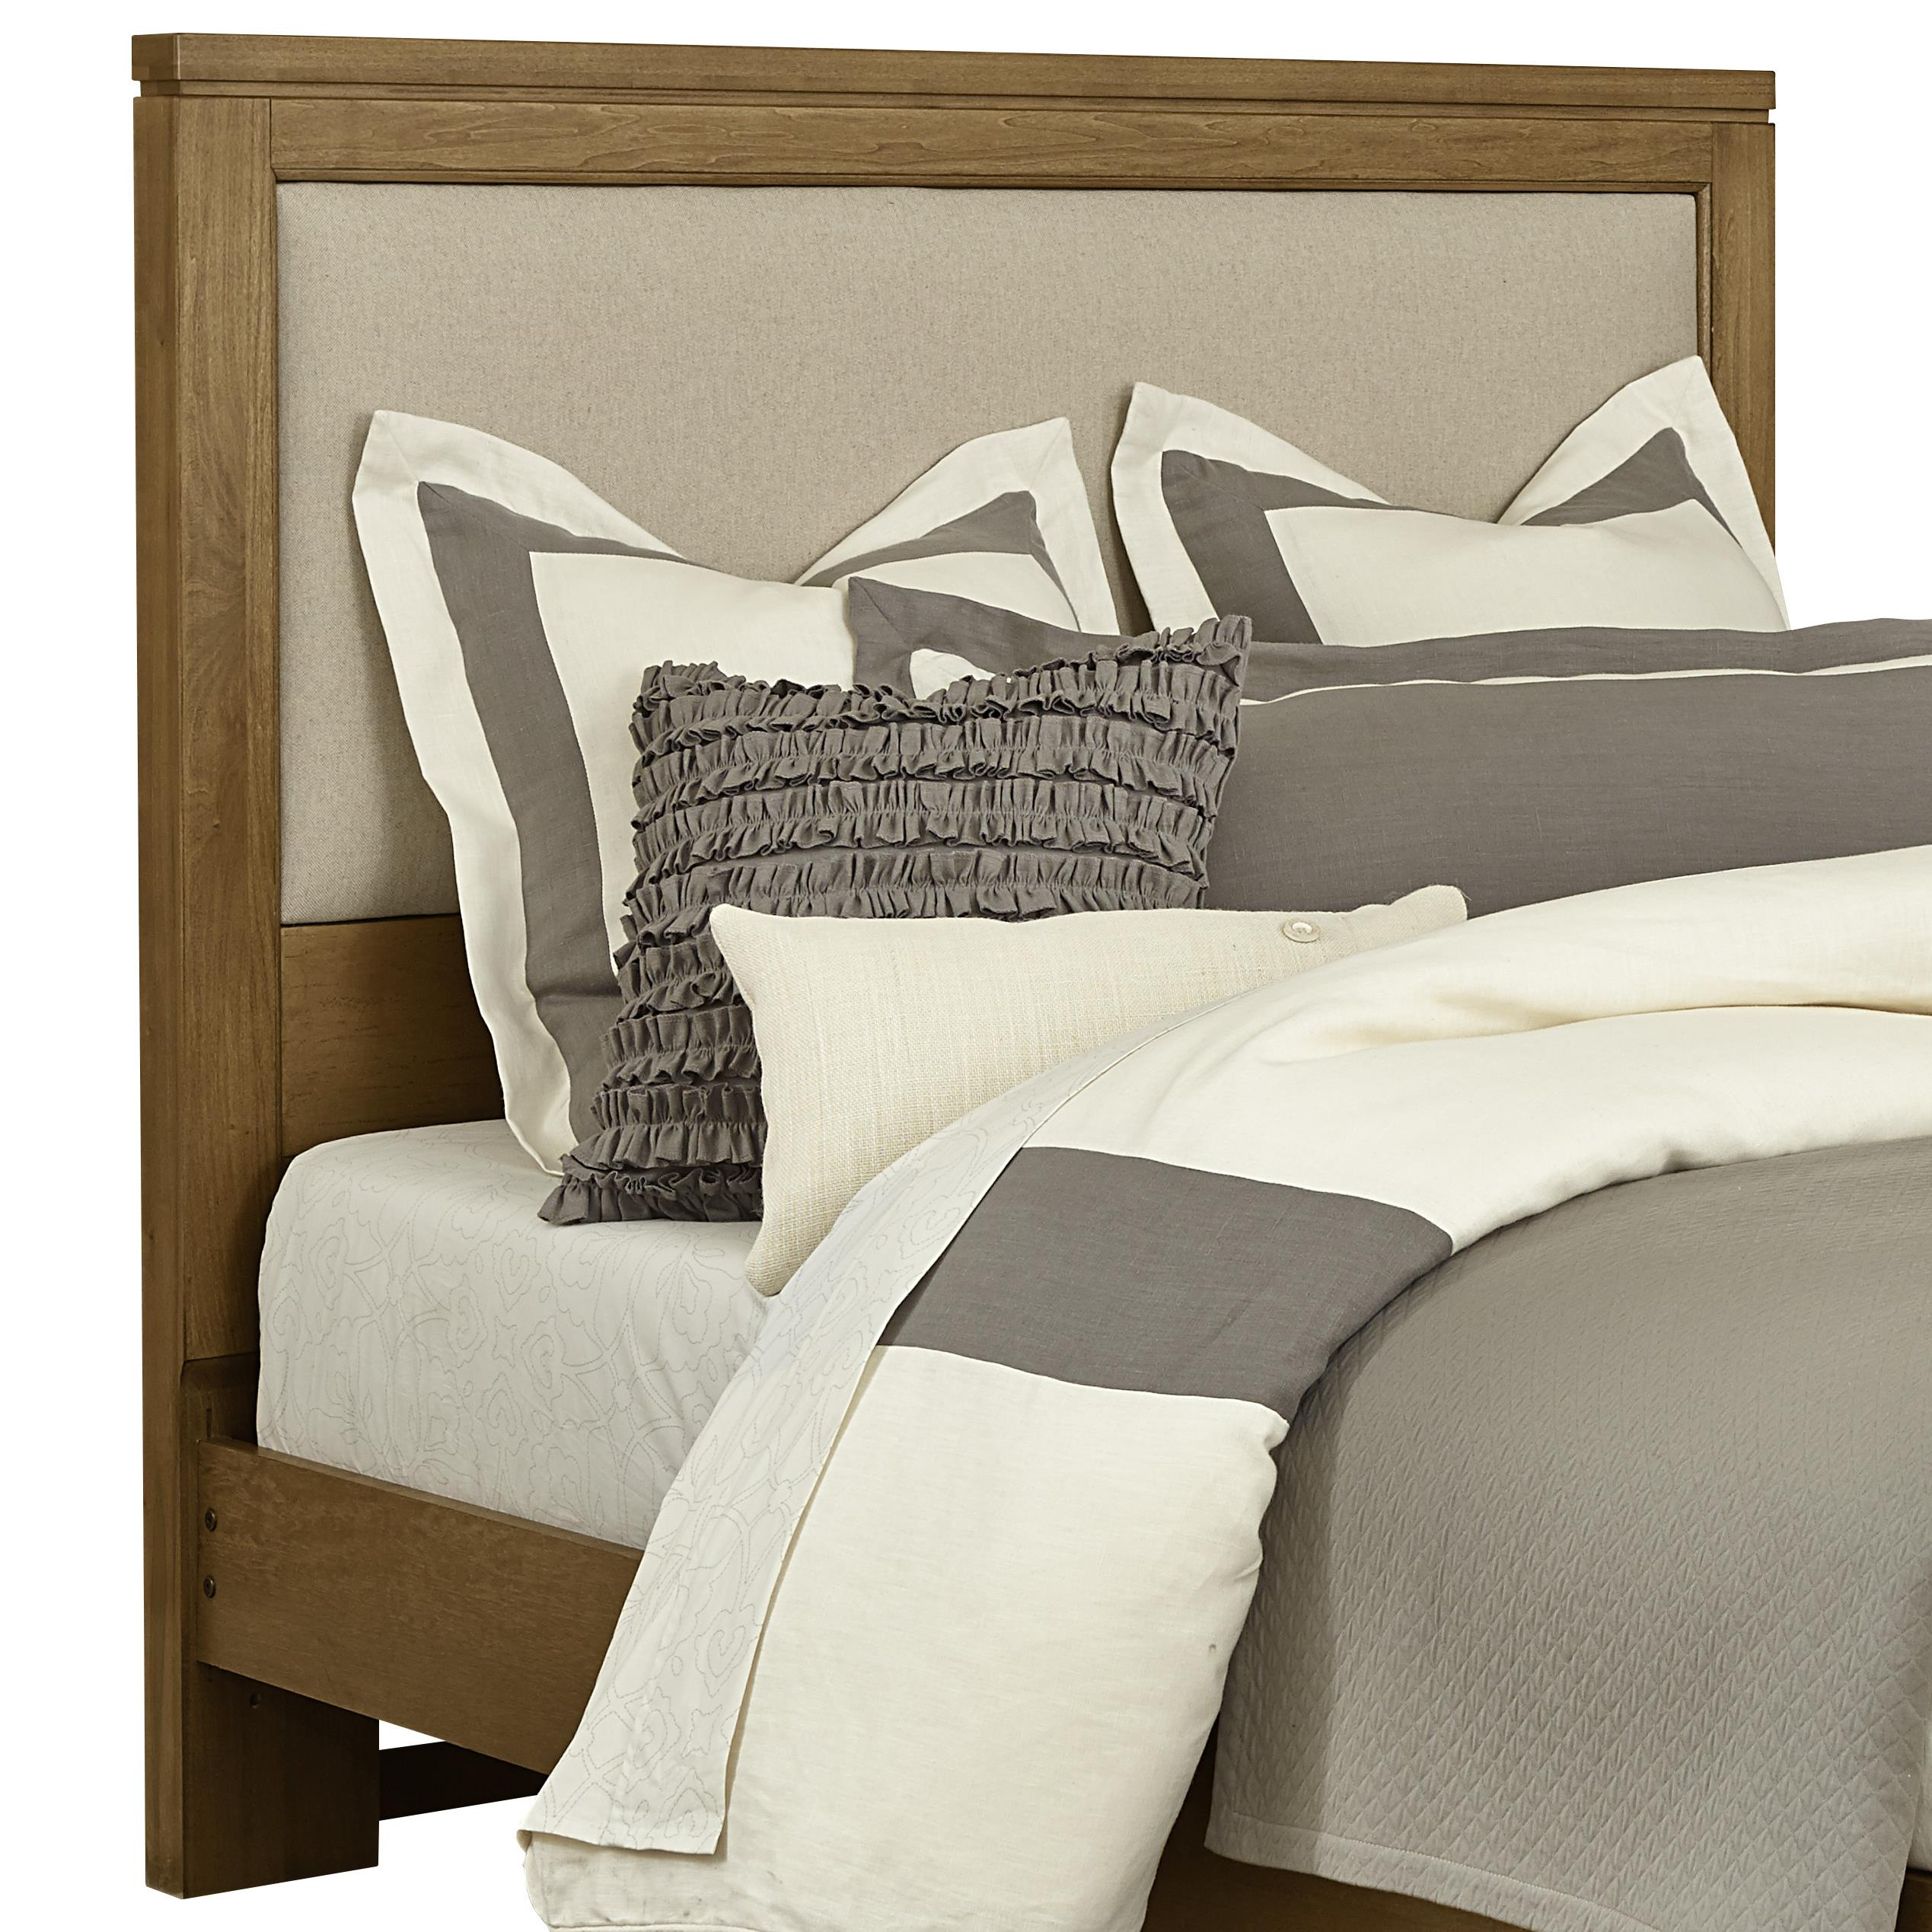 Vaughan Bassett Kismet King Upholstered Headboard, Base Cloth Linen - Item Number: 414-669